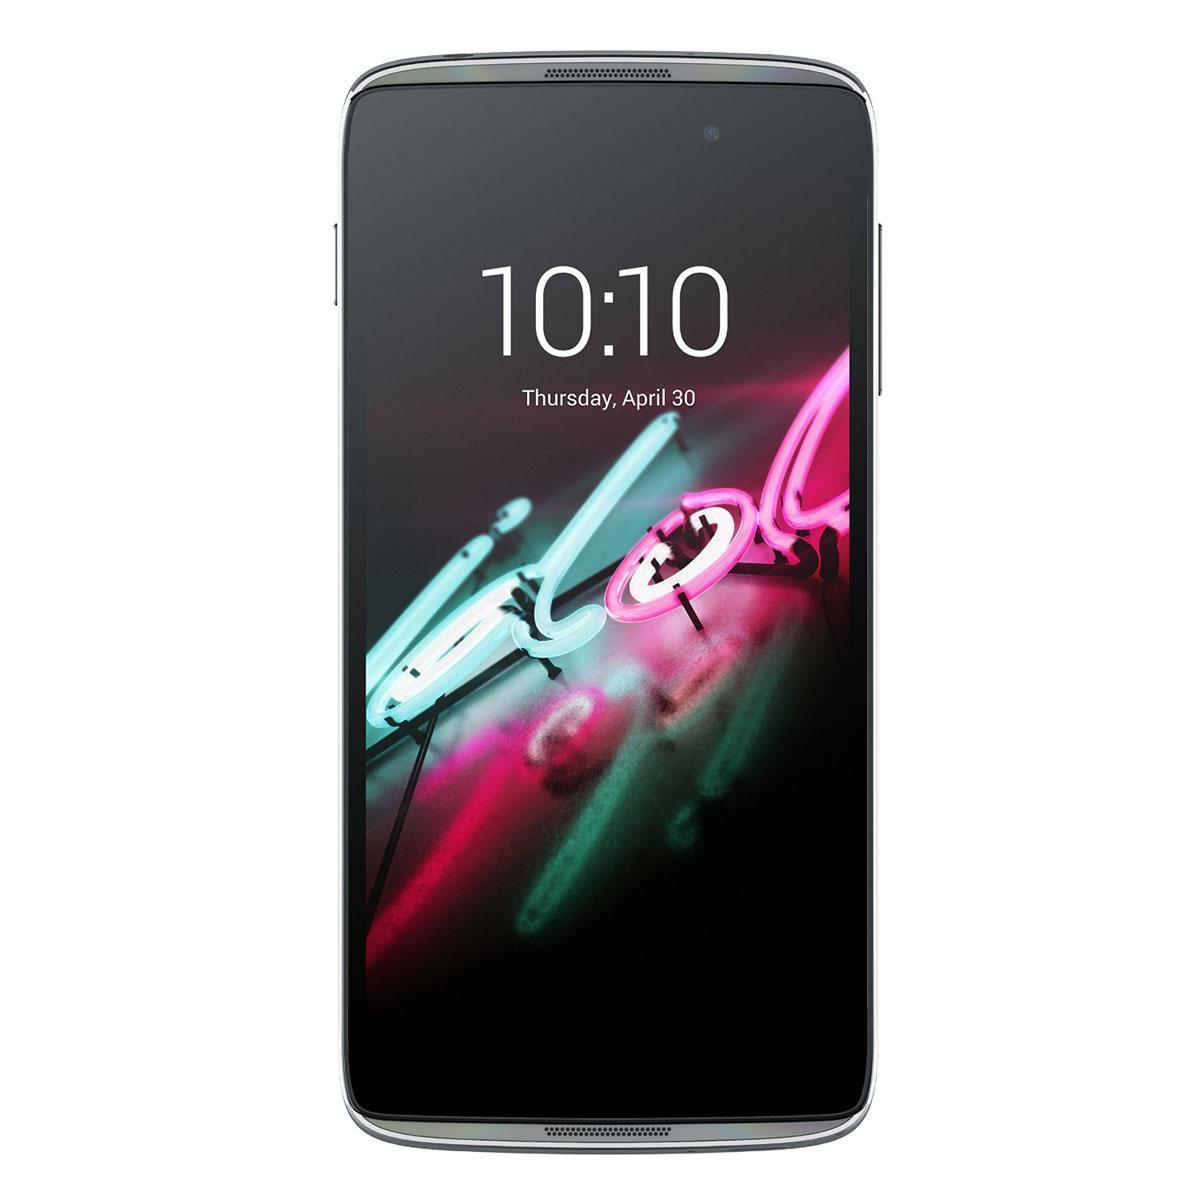 Alcatel One Touch Idol 3 8 Go - Gris - libre